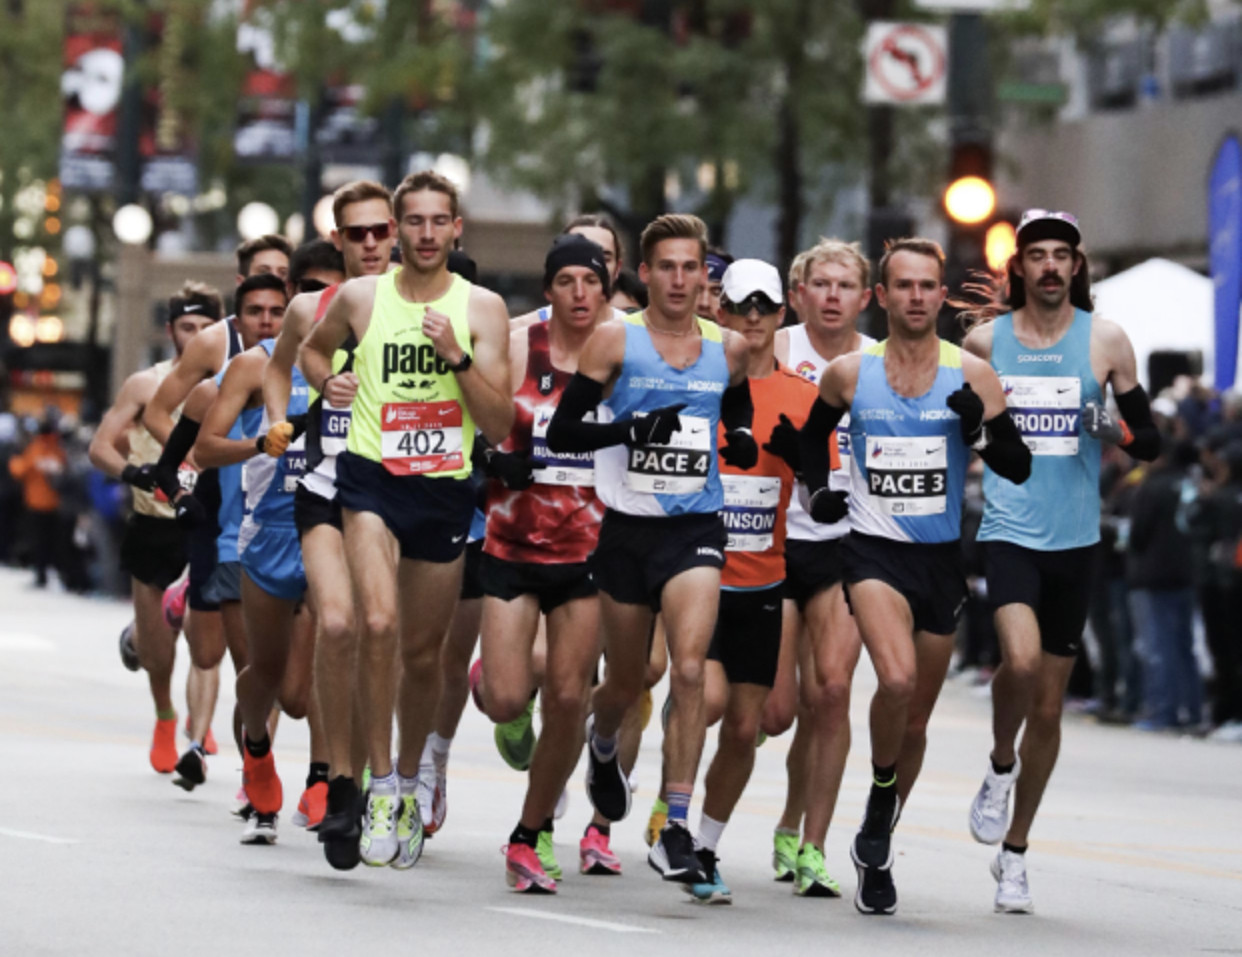 It was a good day for American men at the Chicago Marathon as the top four ran under 2:11